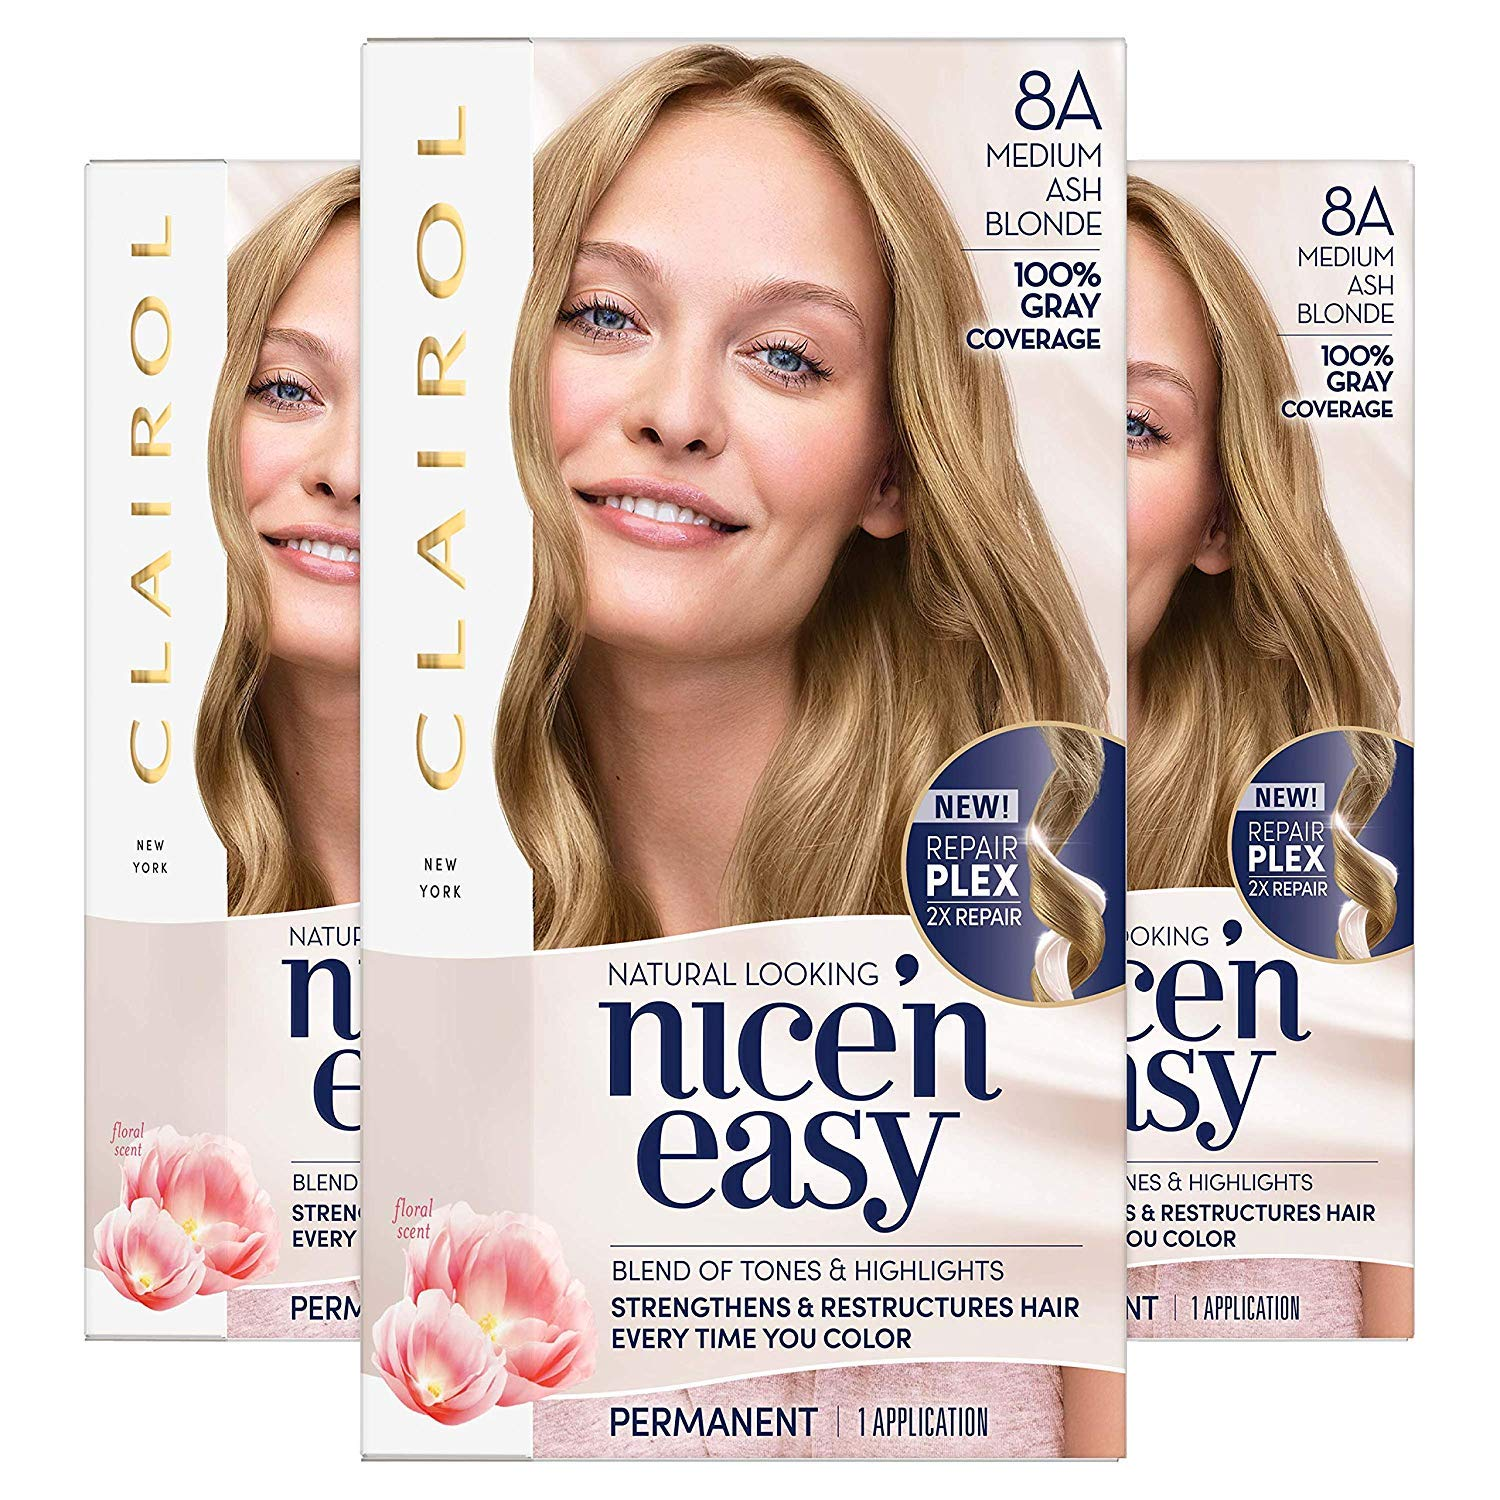 Clairol Nice'n Easy Permanent Hair Color, 8A Medium Ash Blonde, Pack of 3